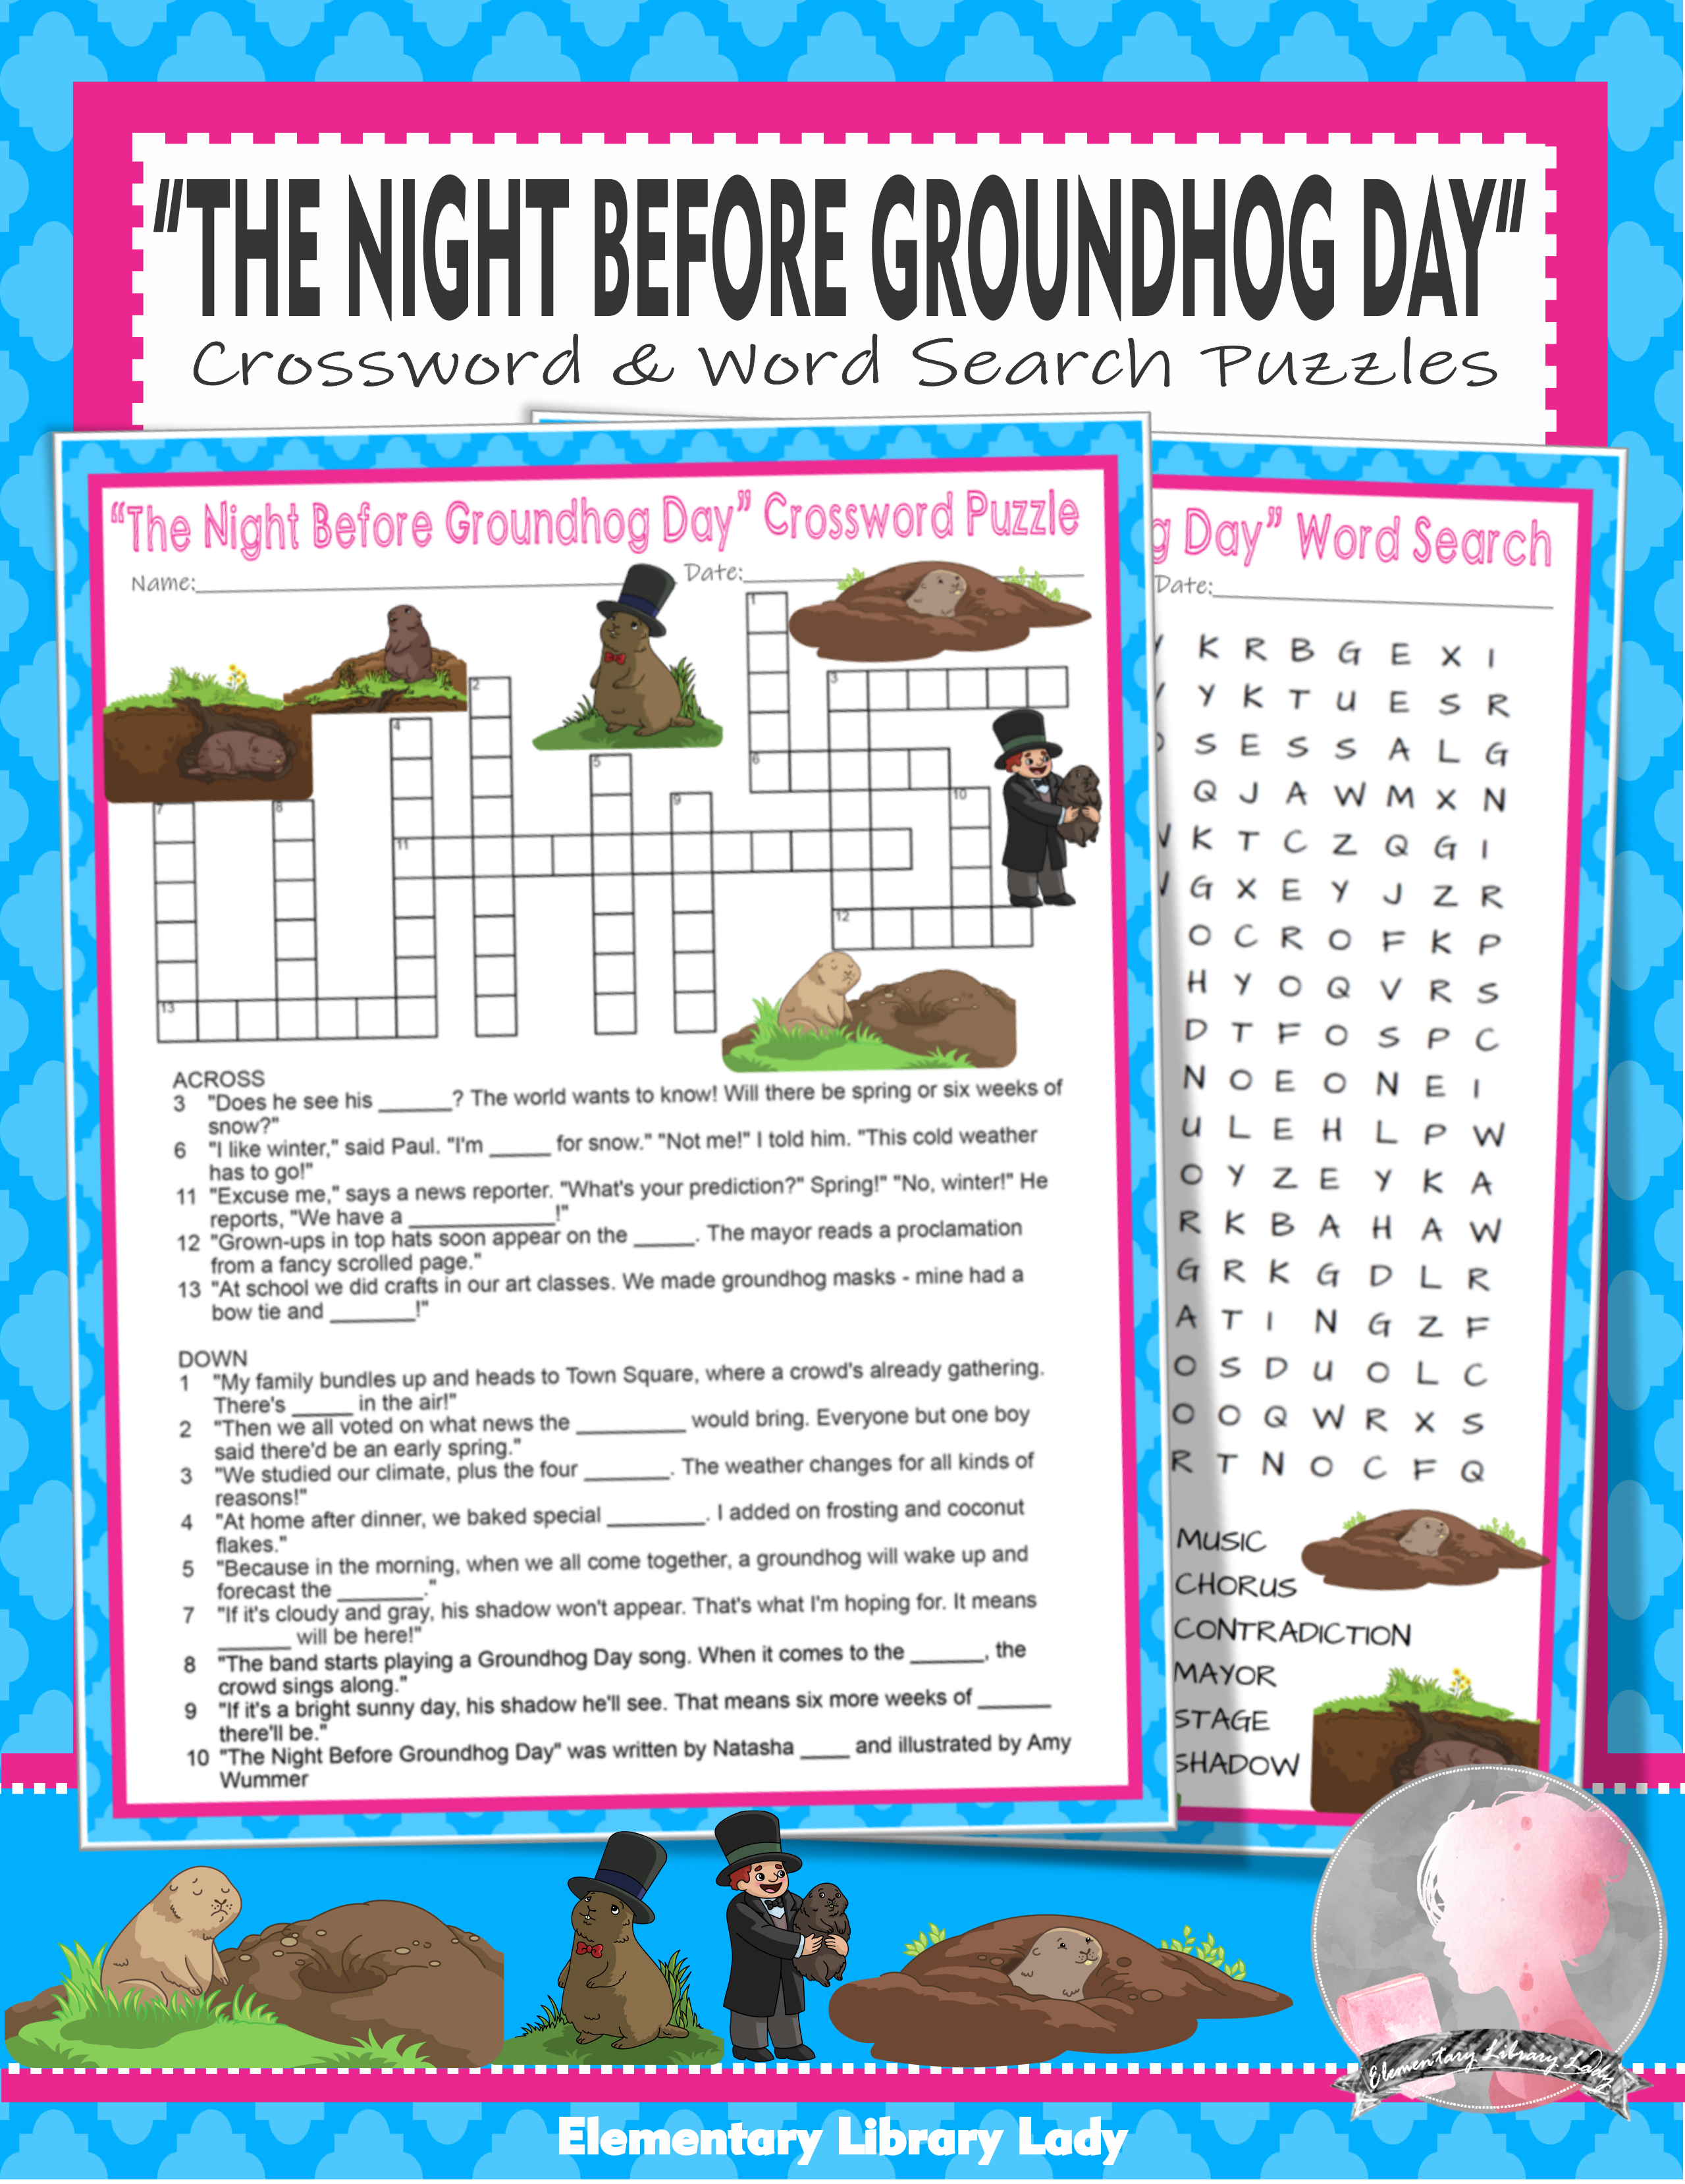 The Night Before Groundhog Day Activities Wing Crossword